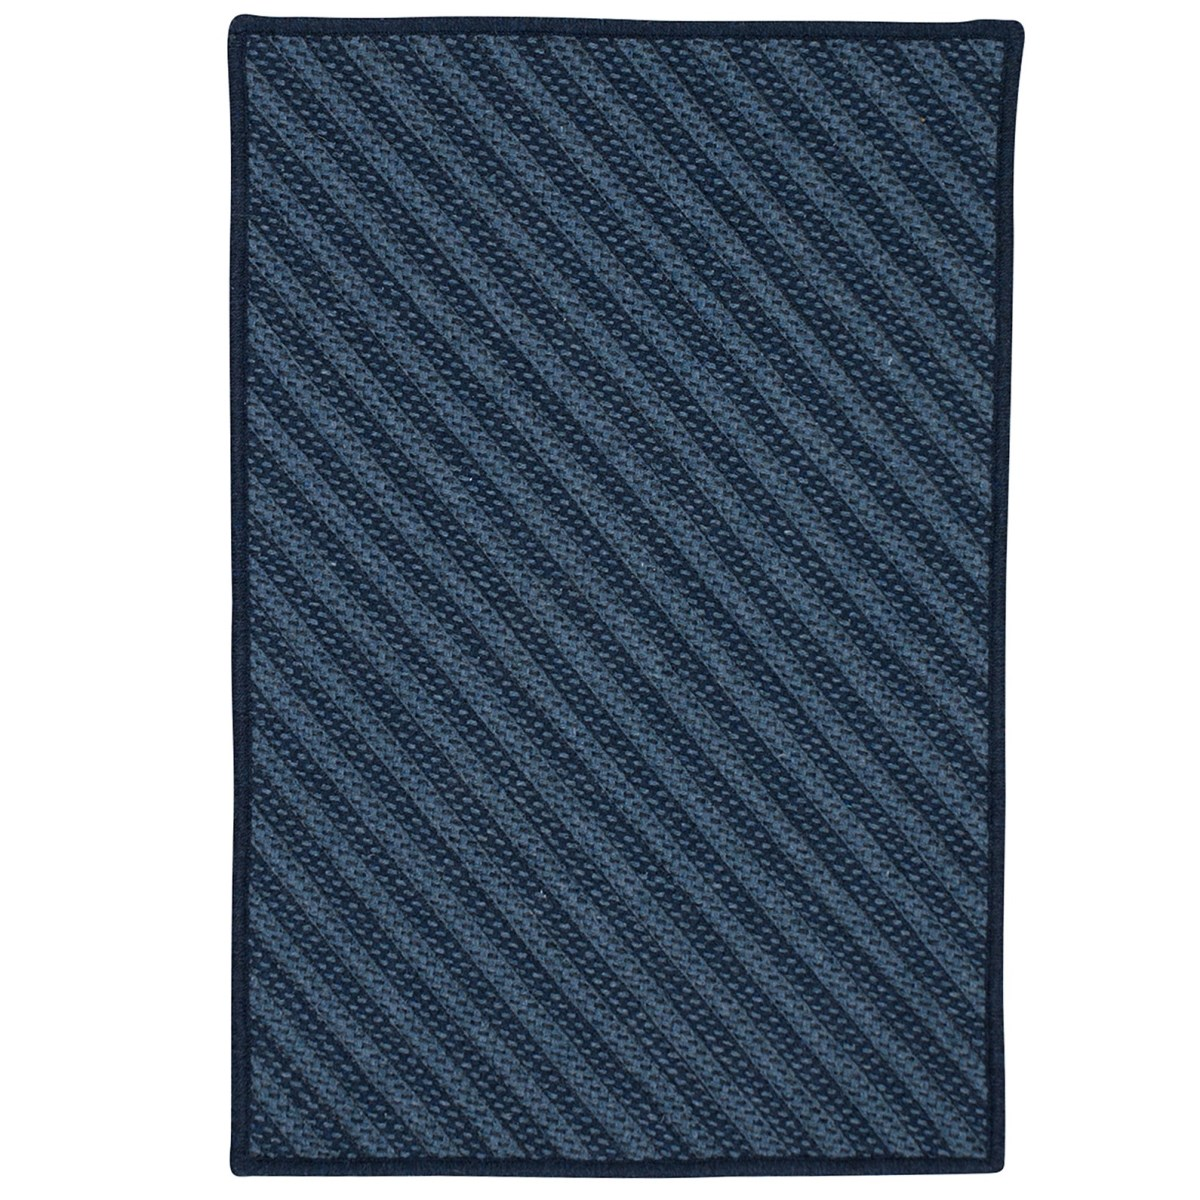 Blue Hill Navy Outdoor Braided Rectangular Rugs